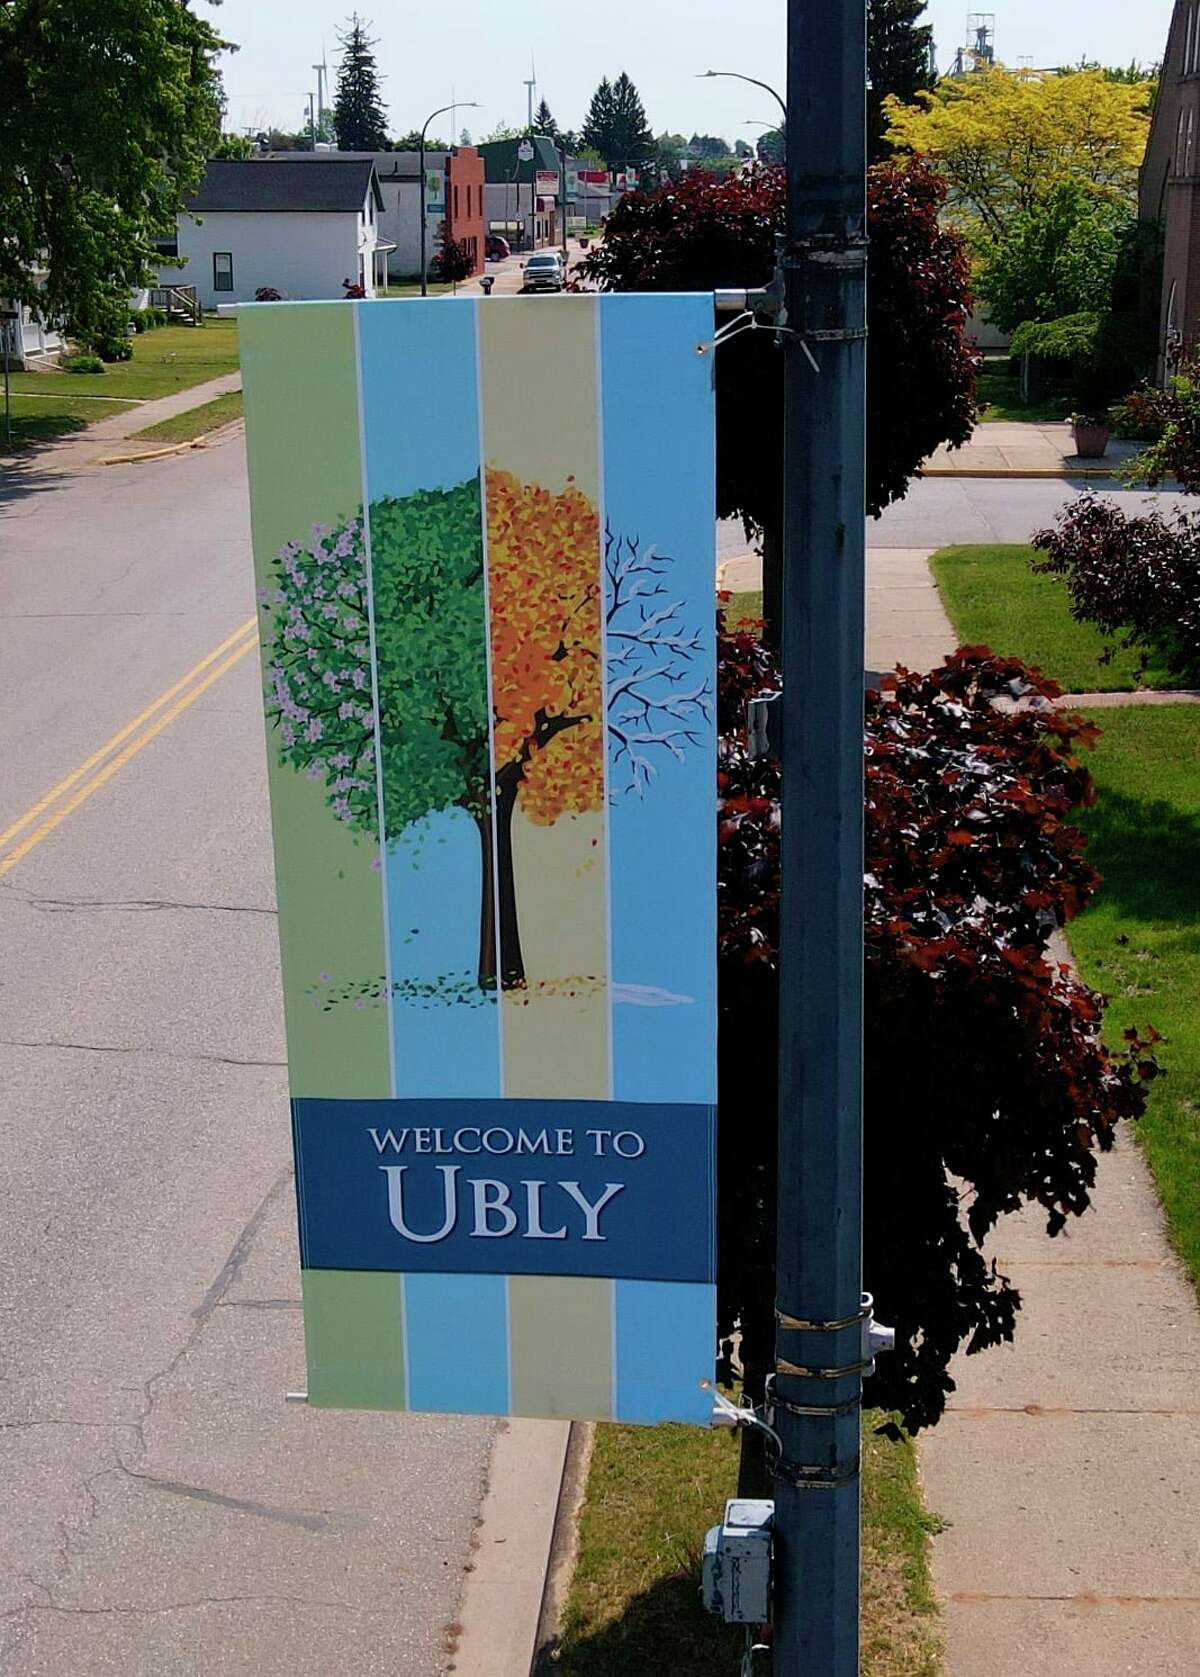 Ubly's new highway banners show trees in different seasons throughout the year. The banner shows how trees change from spring, to summer, to fall, and to winter. (Rick Glaza/Great Lakes Drone Works.)